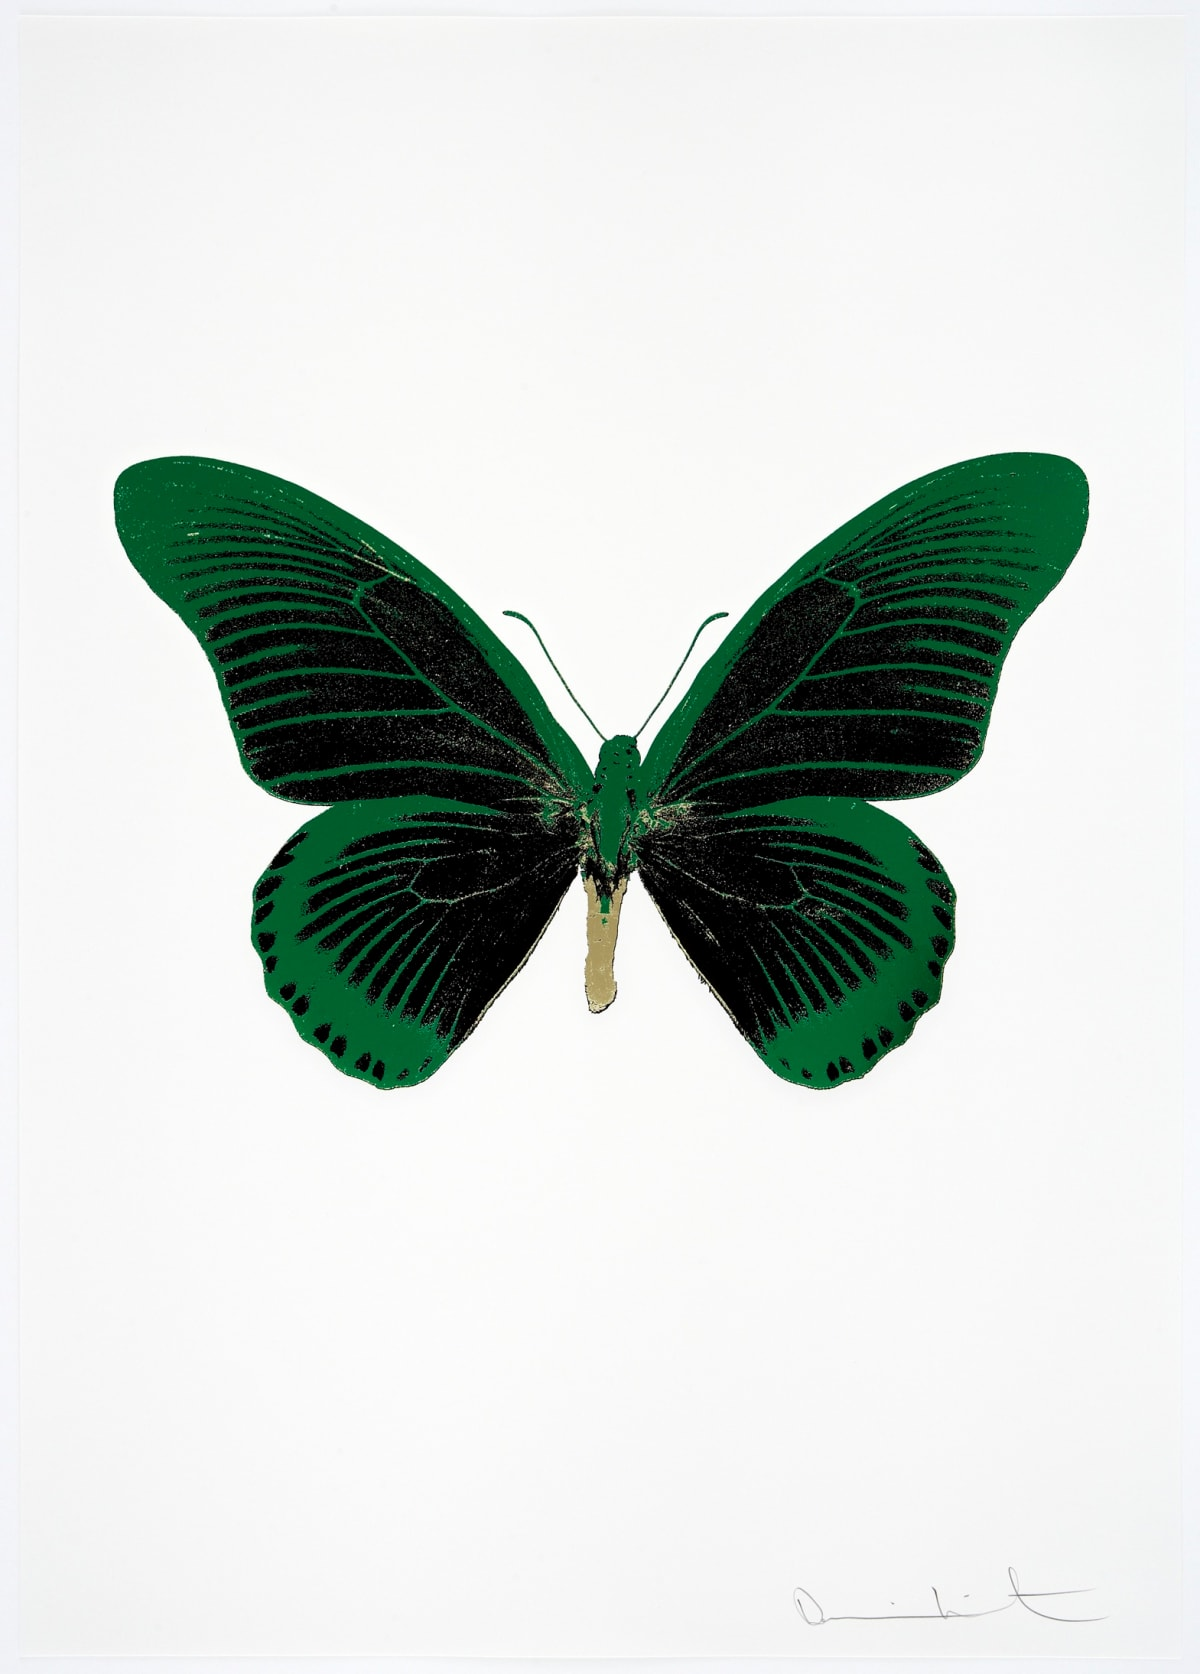 Damien Hirst The Souls IV - Raven Black/Emerald Green/Cool Gold Damien Hirst butterfly foil print for sale Damien Hirst print for sale , 2010 3 colour foil block on 300gsm Arches 88 archival paper. Signed and numbered. Published by Paul Stolper and Other Criteria 72 x 51cm OC8051 / 1418-74 Edition of 15